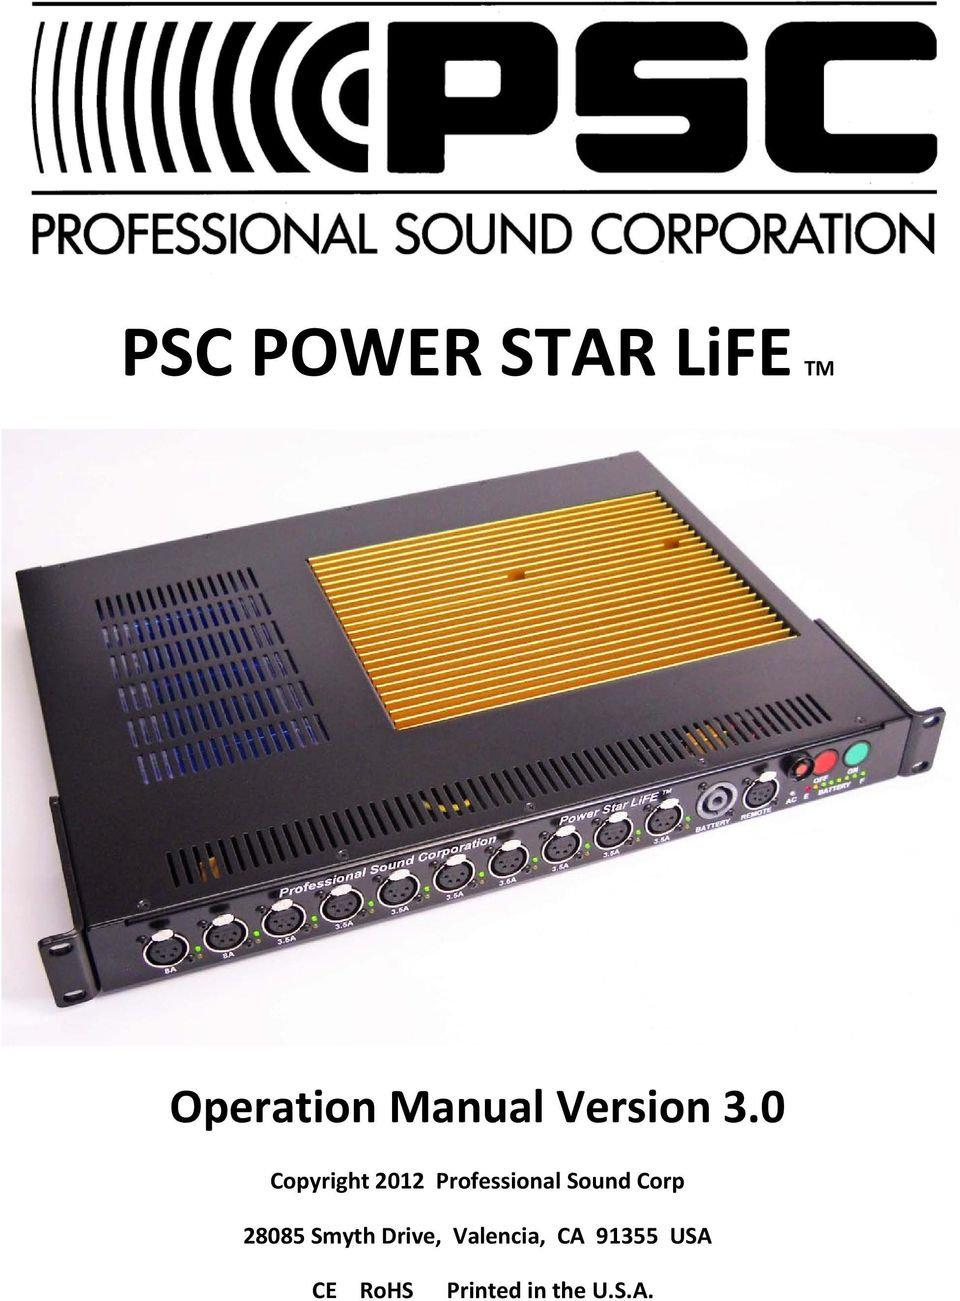 0 Copyright 2012 Professional Sound Corp